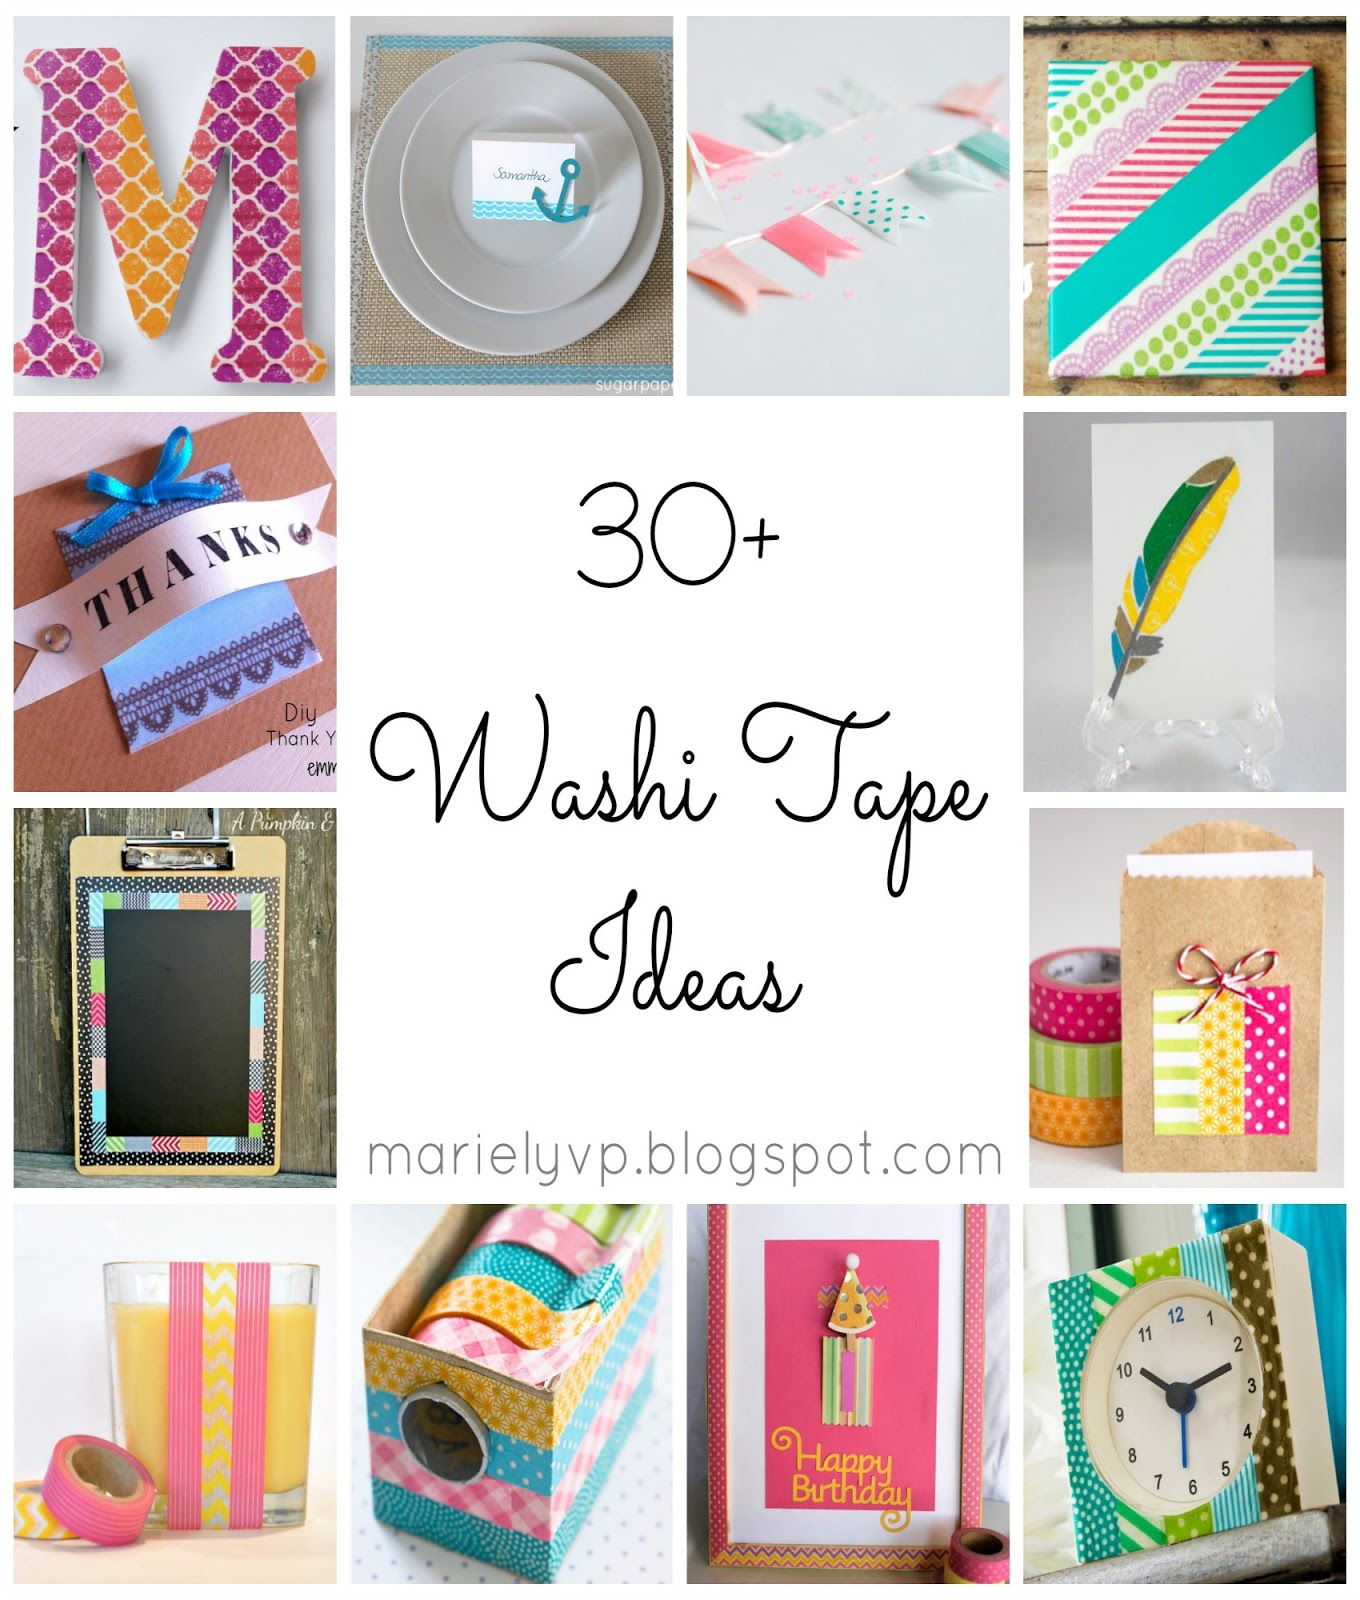 Washi Tale We Read 30 43 Washi Tape Ideas Round Up